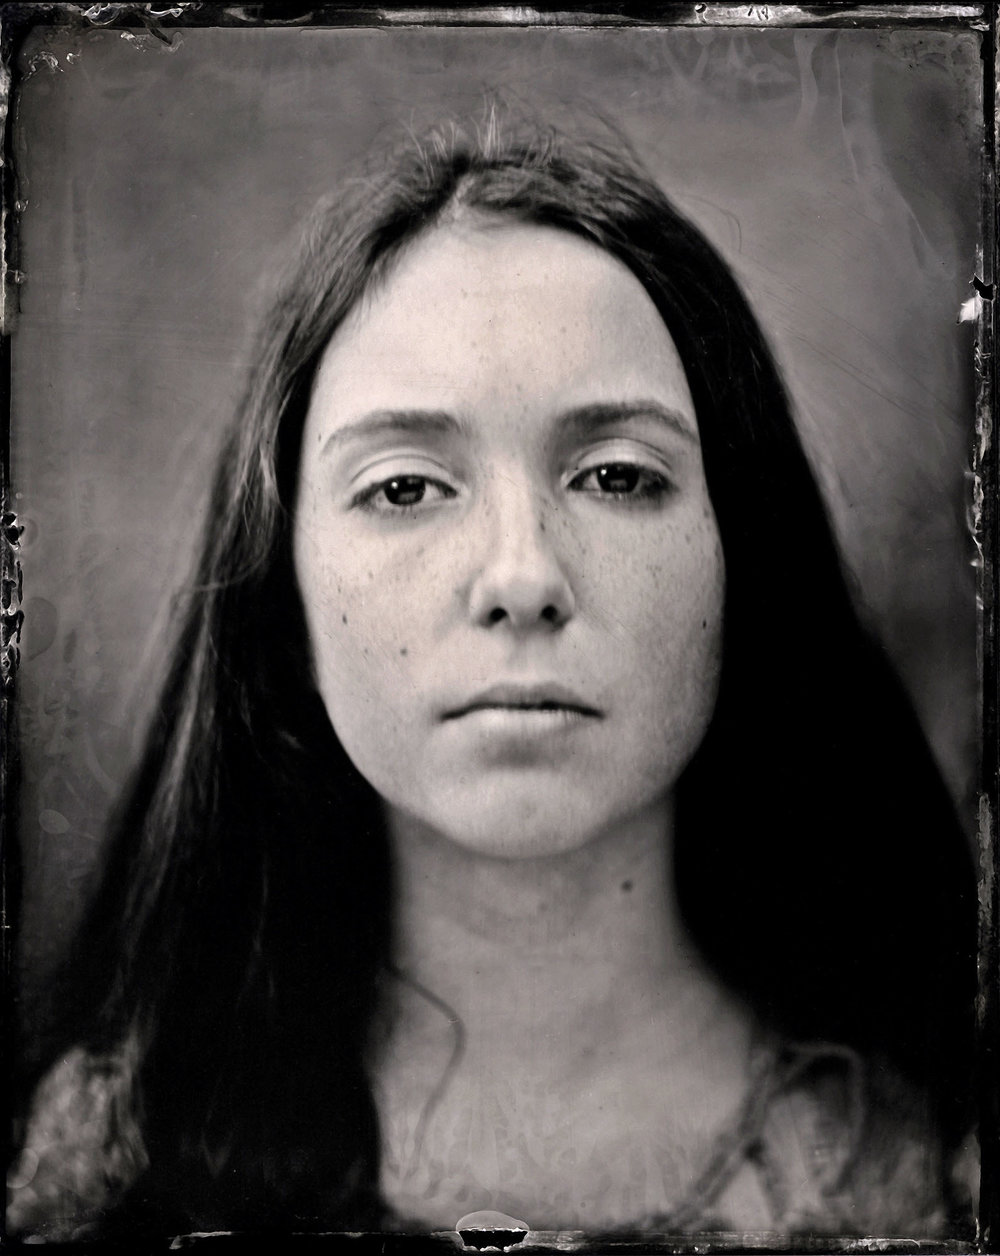 Title : Olivia   By:  Name : Jason  Chinchen    https://www.instagram.com/analogue_tintypes/